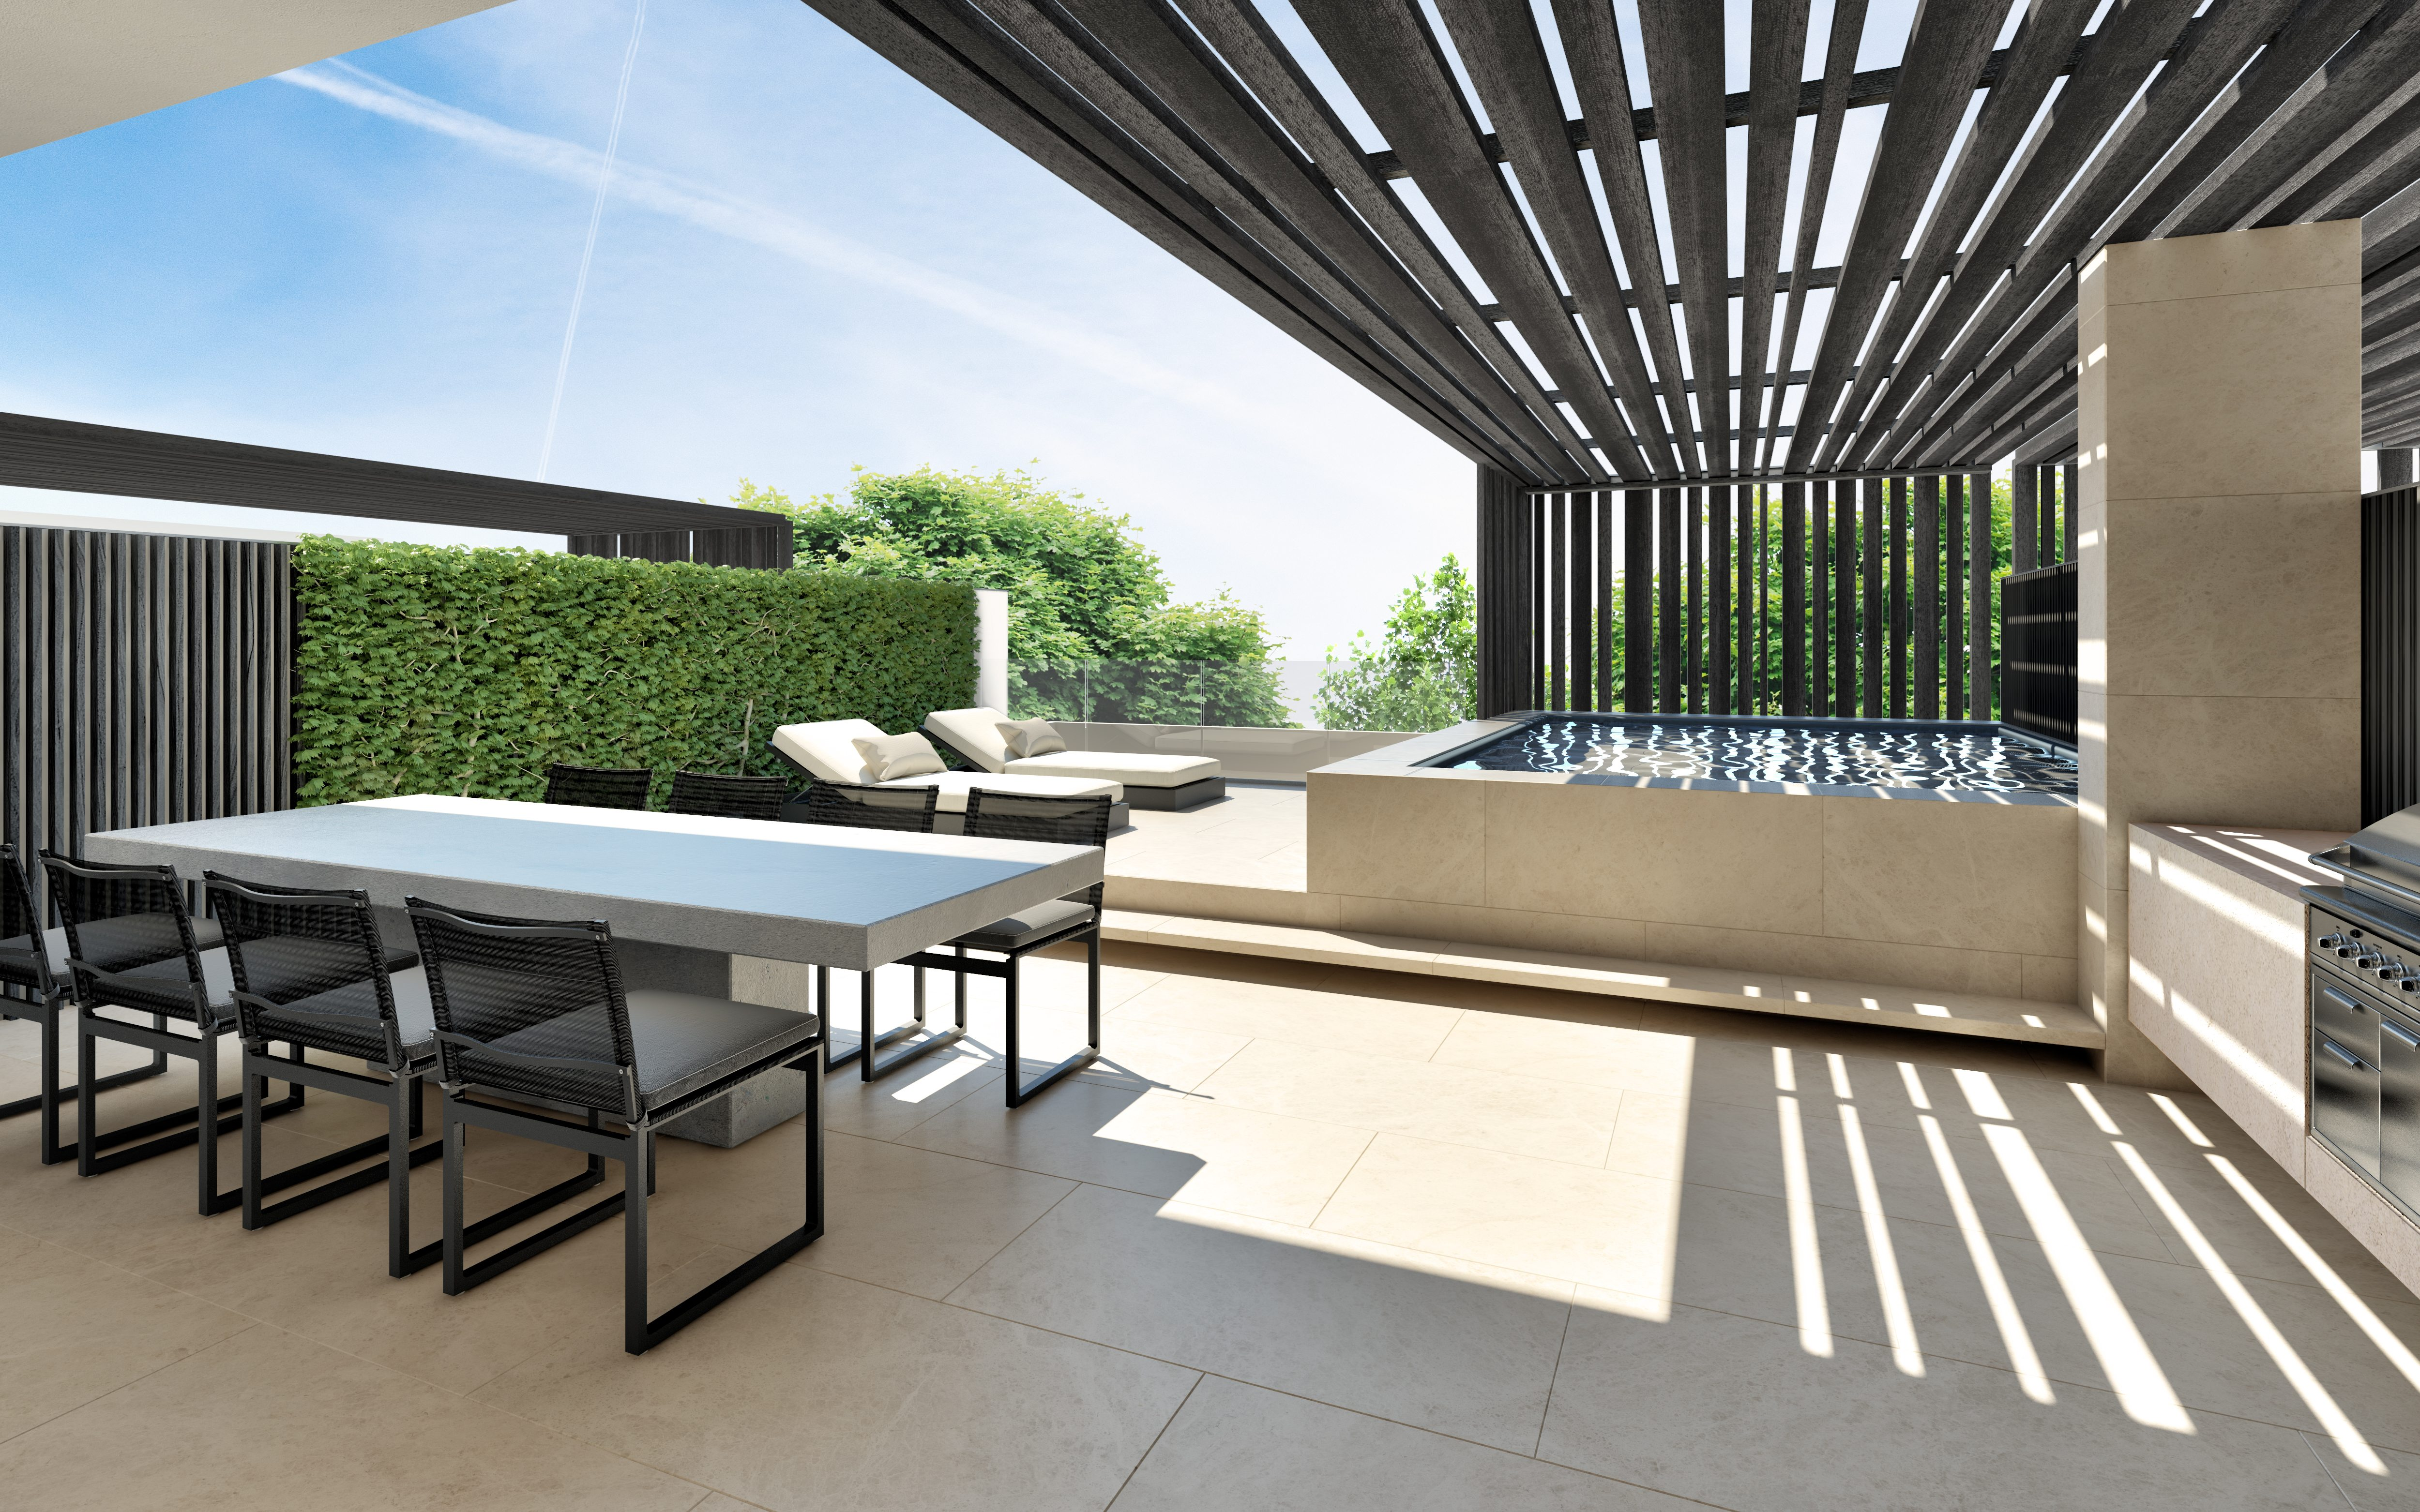 11Lenox_Outdoor terrace stripes